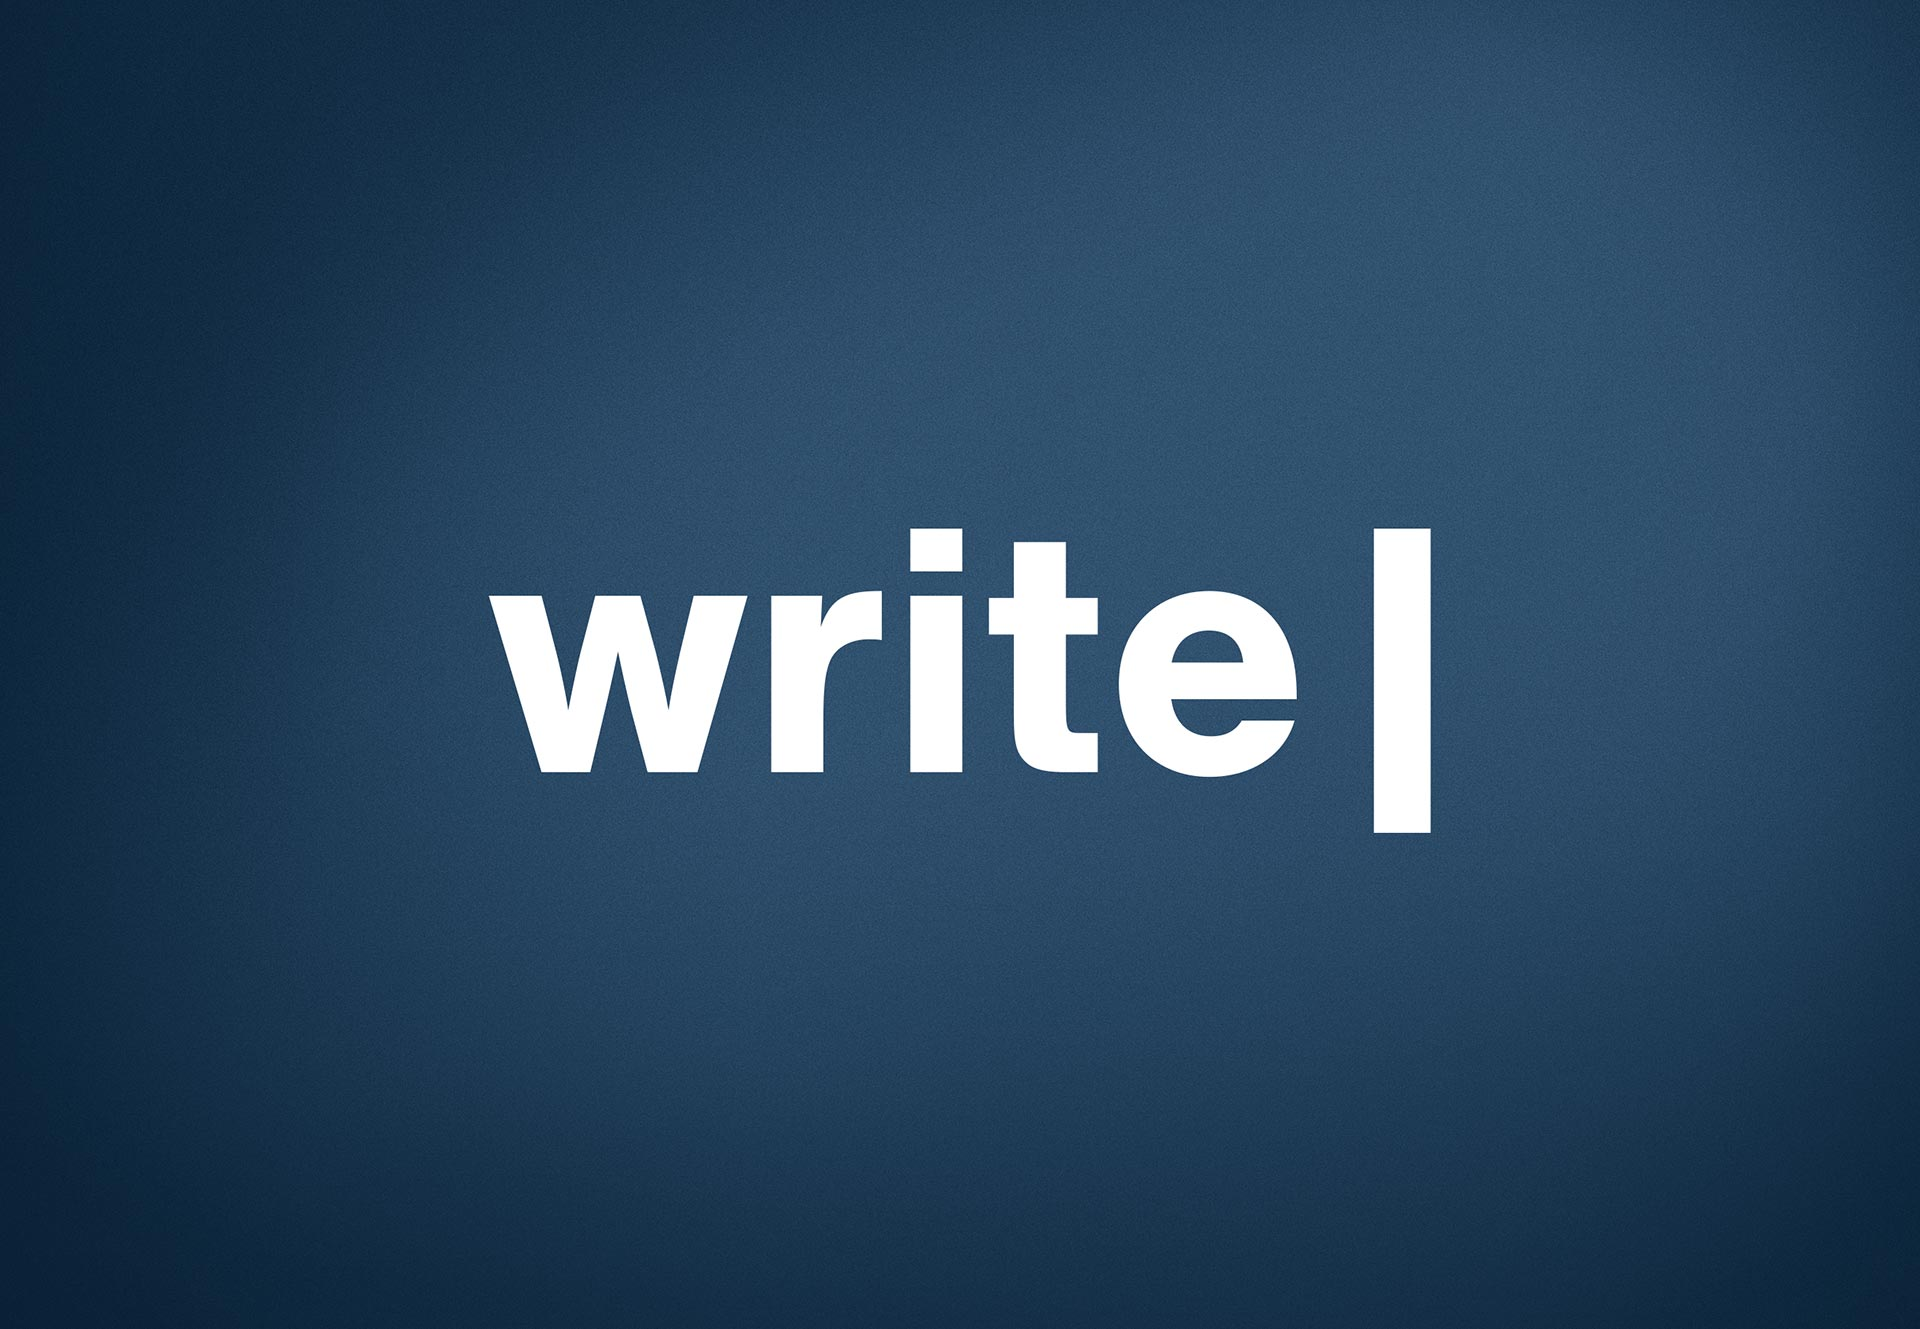 Logo Design for Write